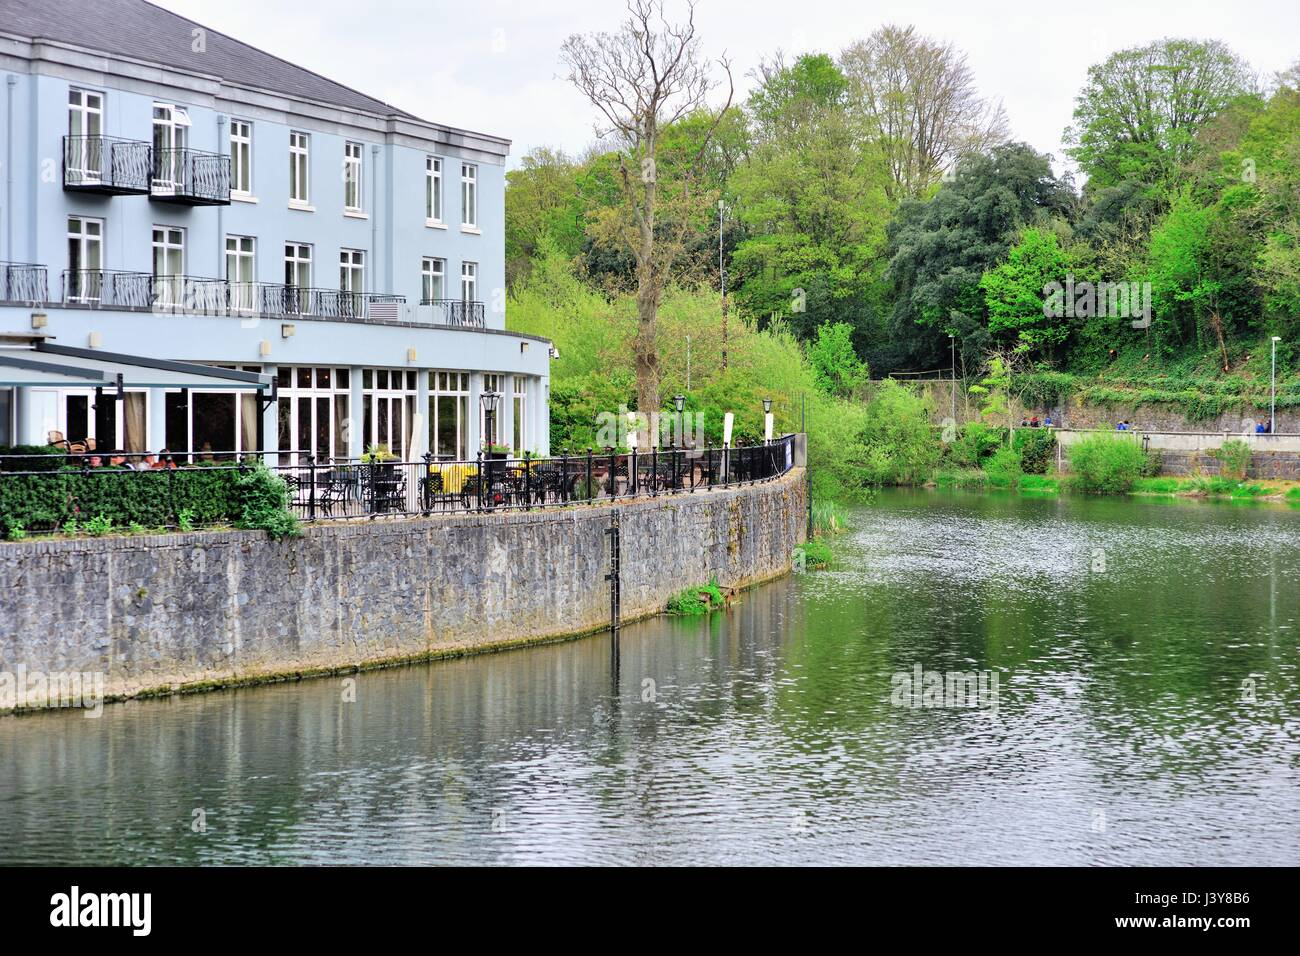 Inn along the River Nore in Kilkenny, Ireland. An ancient city, Kilkenny boasts a medieval mile and is full of historic - Stock Image